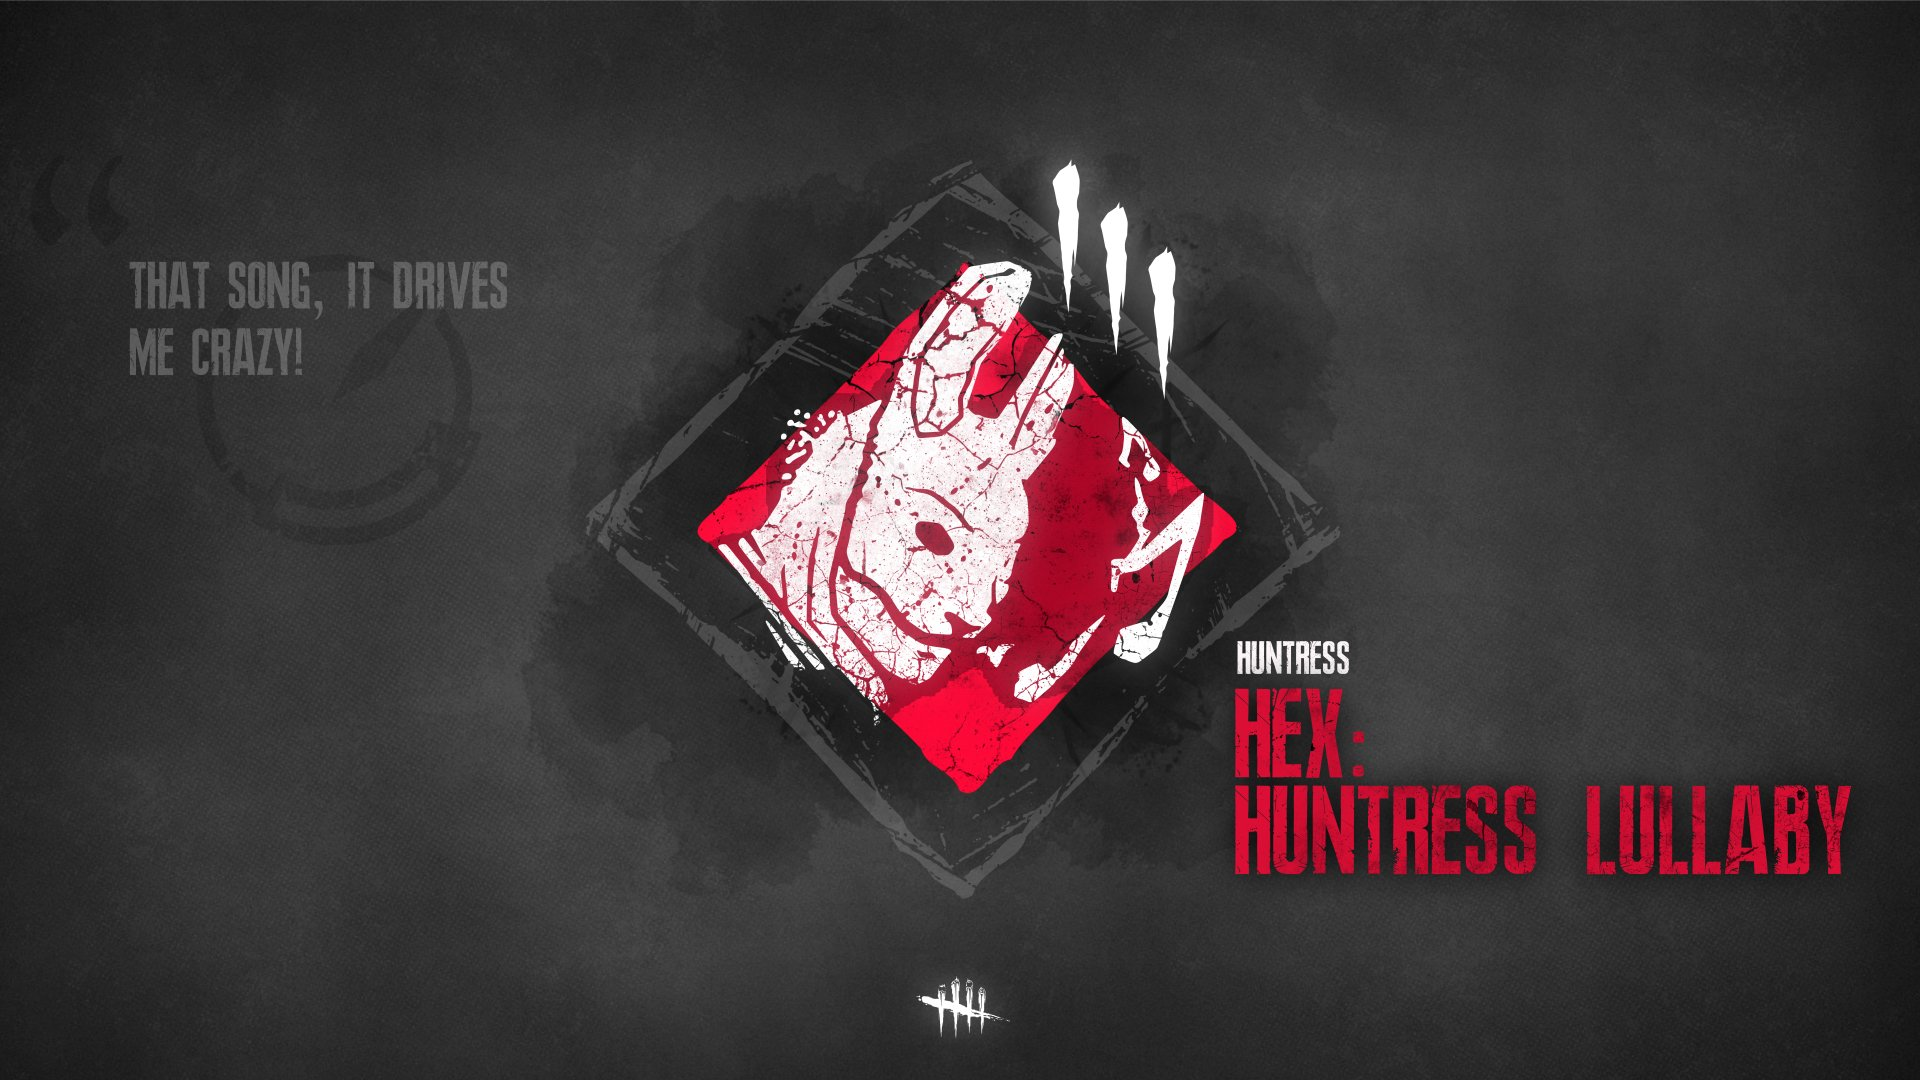 3 Hex Huntress Lullaby Dead By Daylight Hd Wallpapers